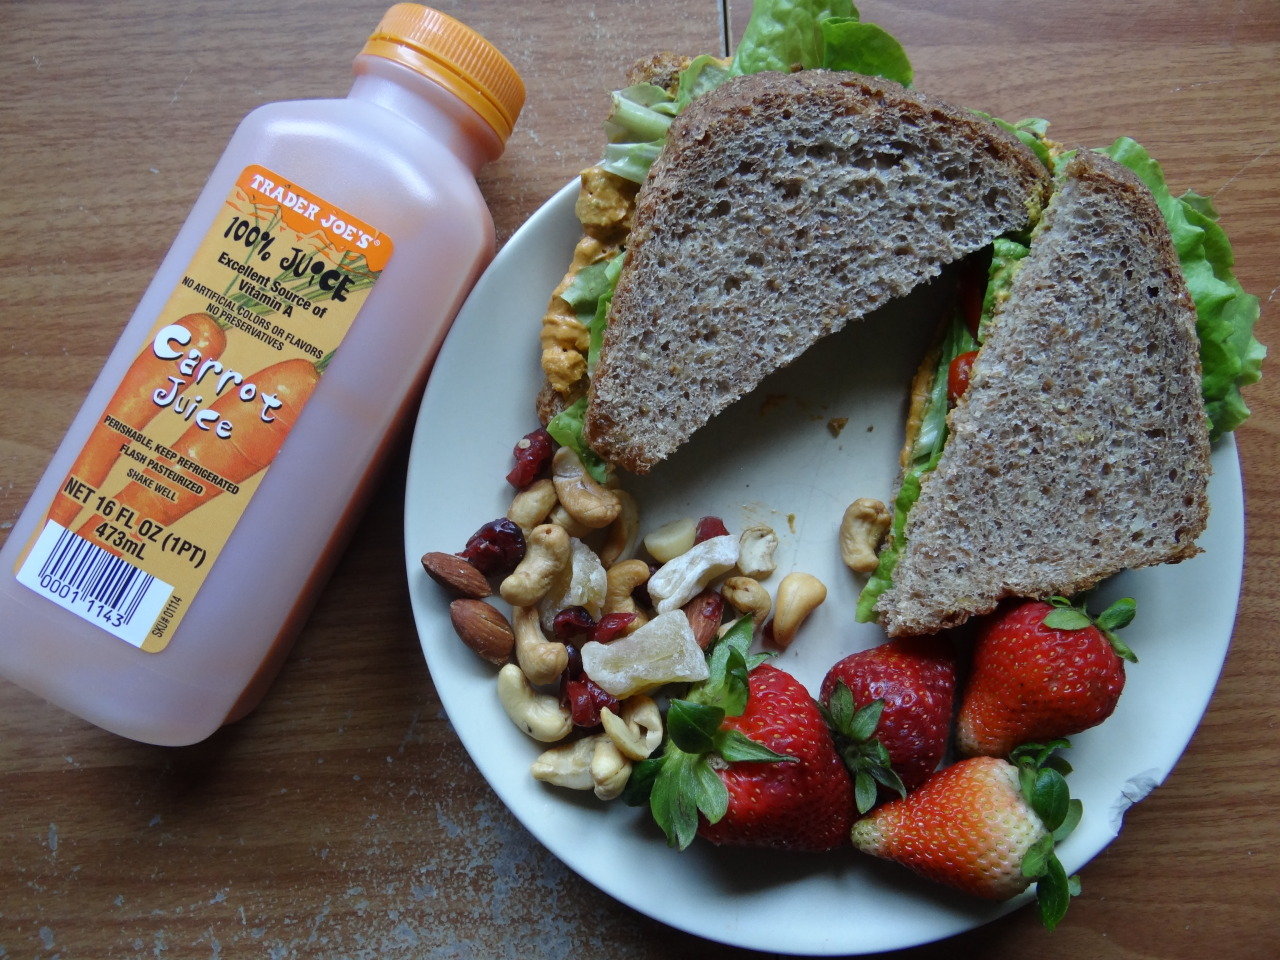 mayur-asana:  today's lunch: ezekiel bread sandwich with red pepper hummus, mustard, local lettuce, and tomatos ; strawberries ; cashew almond cranberry pineapple trail mix ; carrot juice